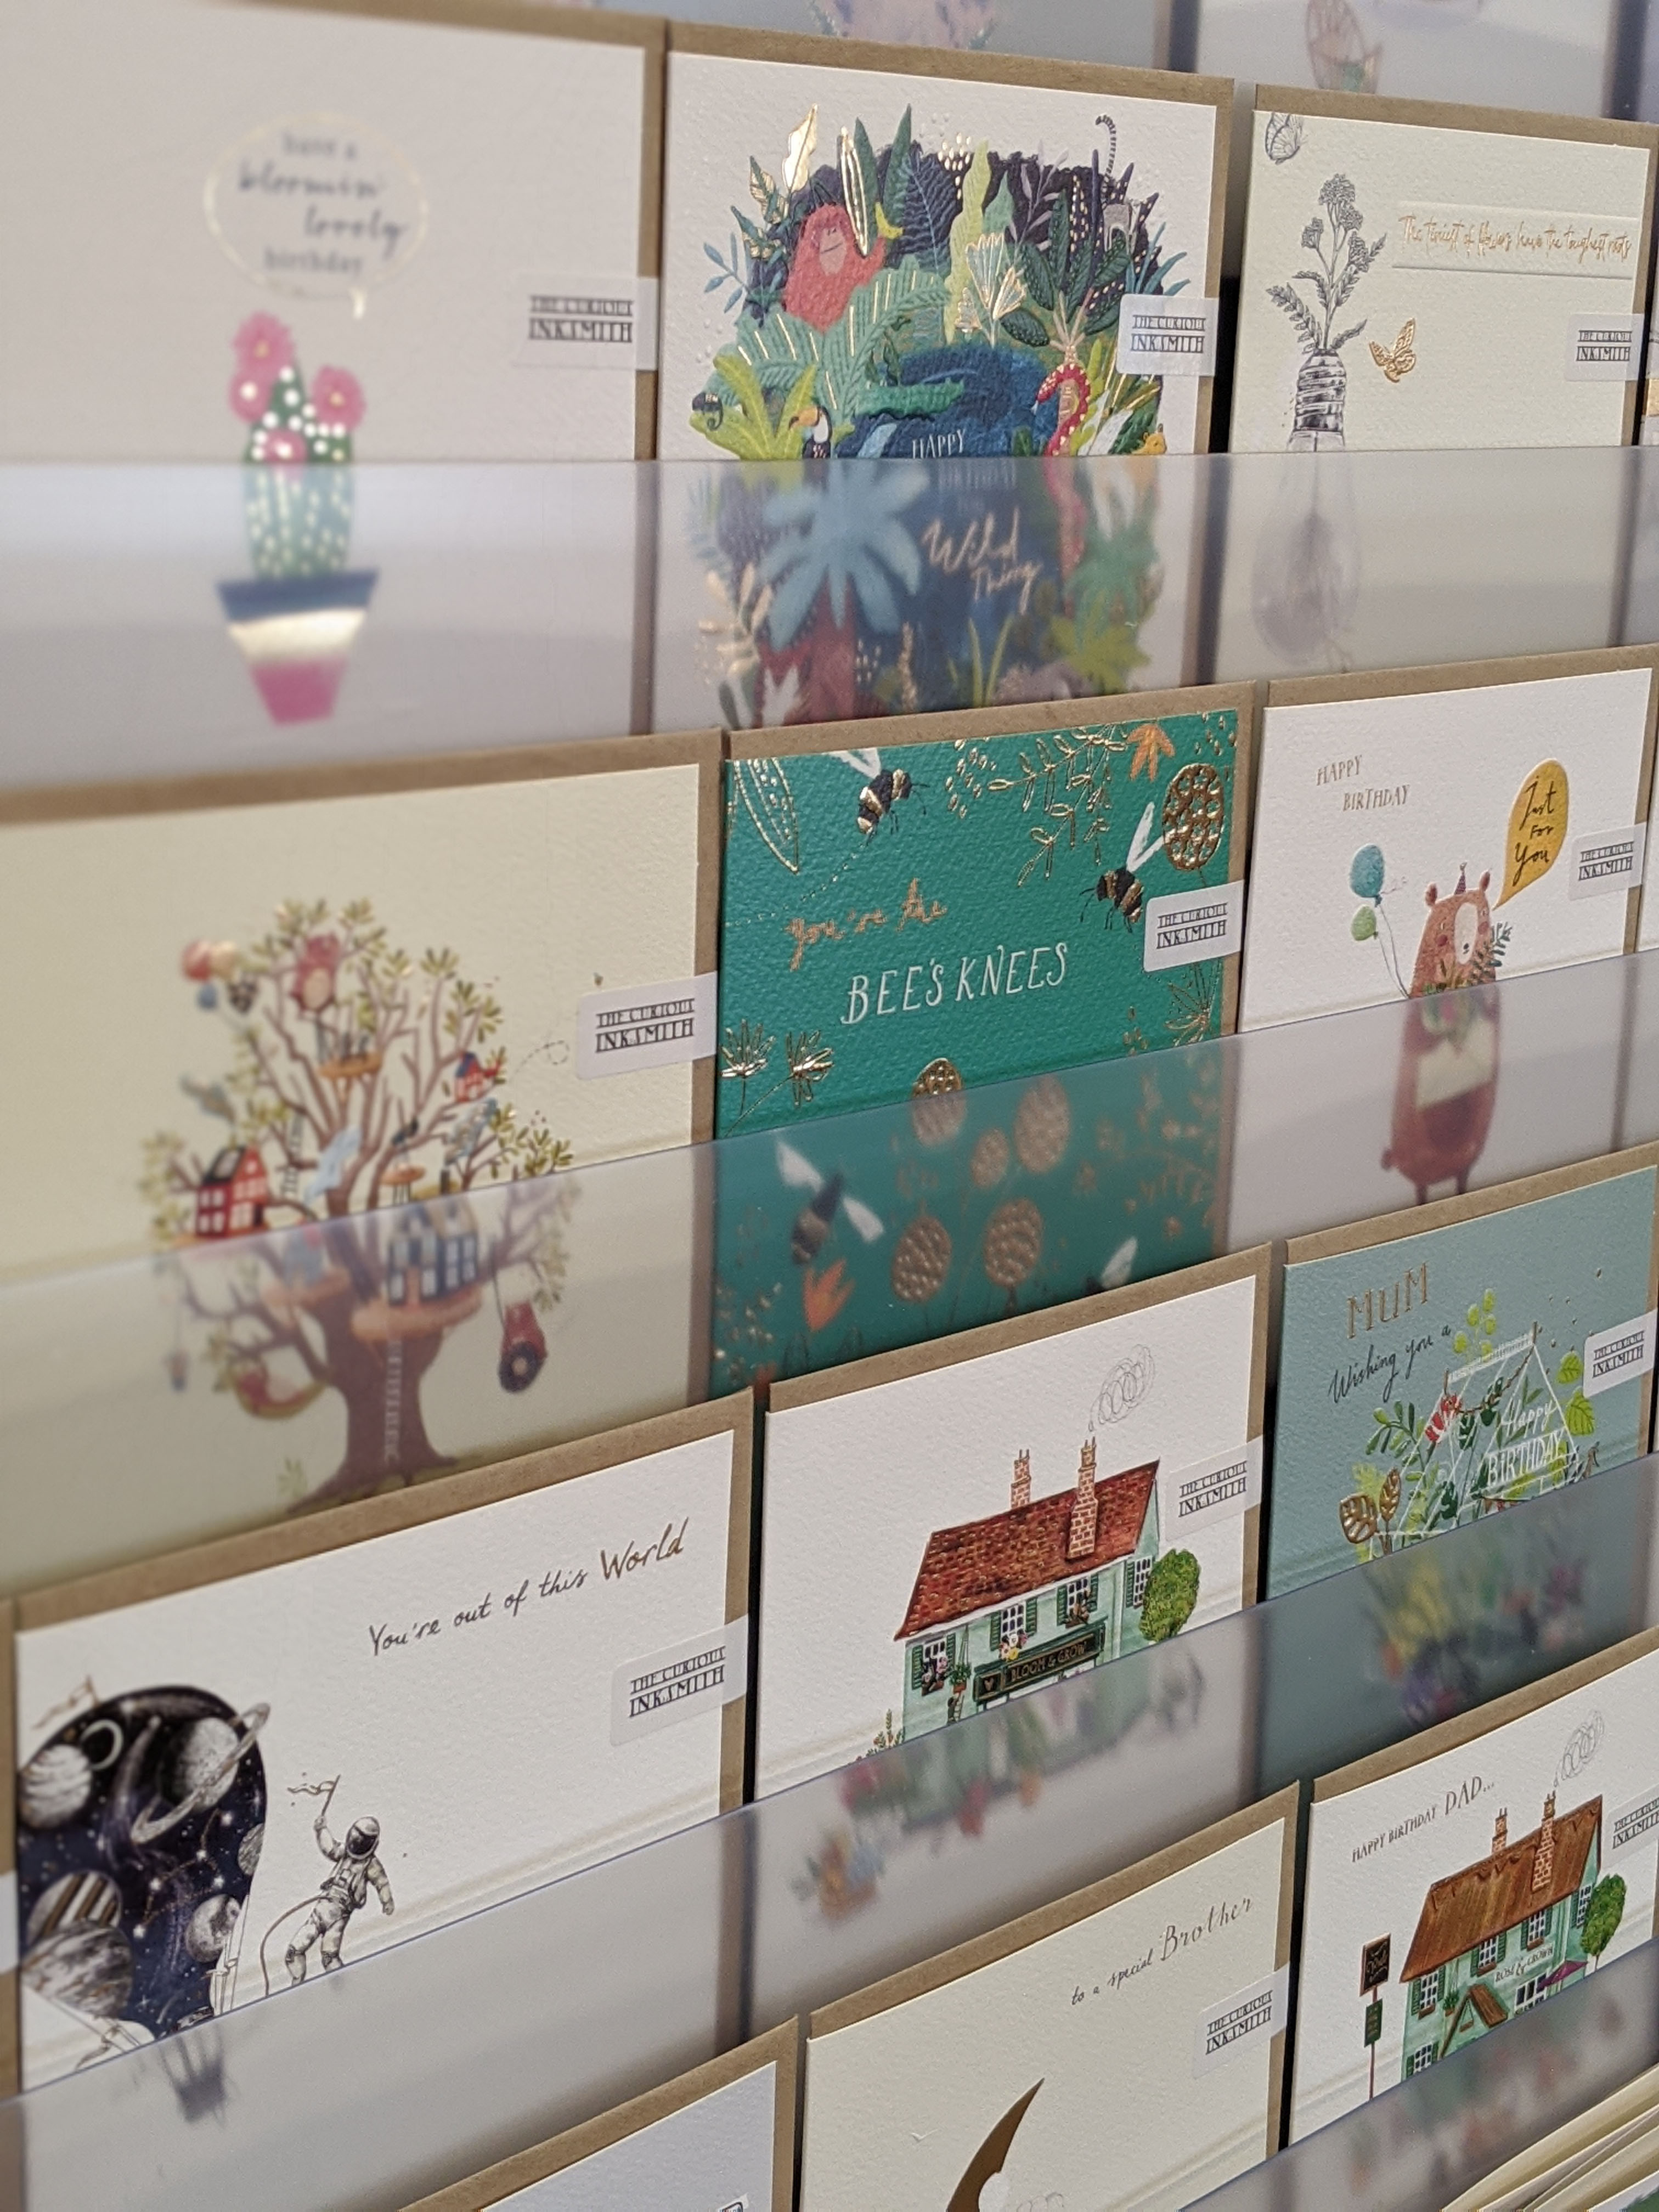 Above: The Curious Inksmith range has recently expanded with 34 new open cards and 10 new relations designs.